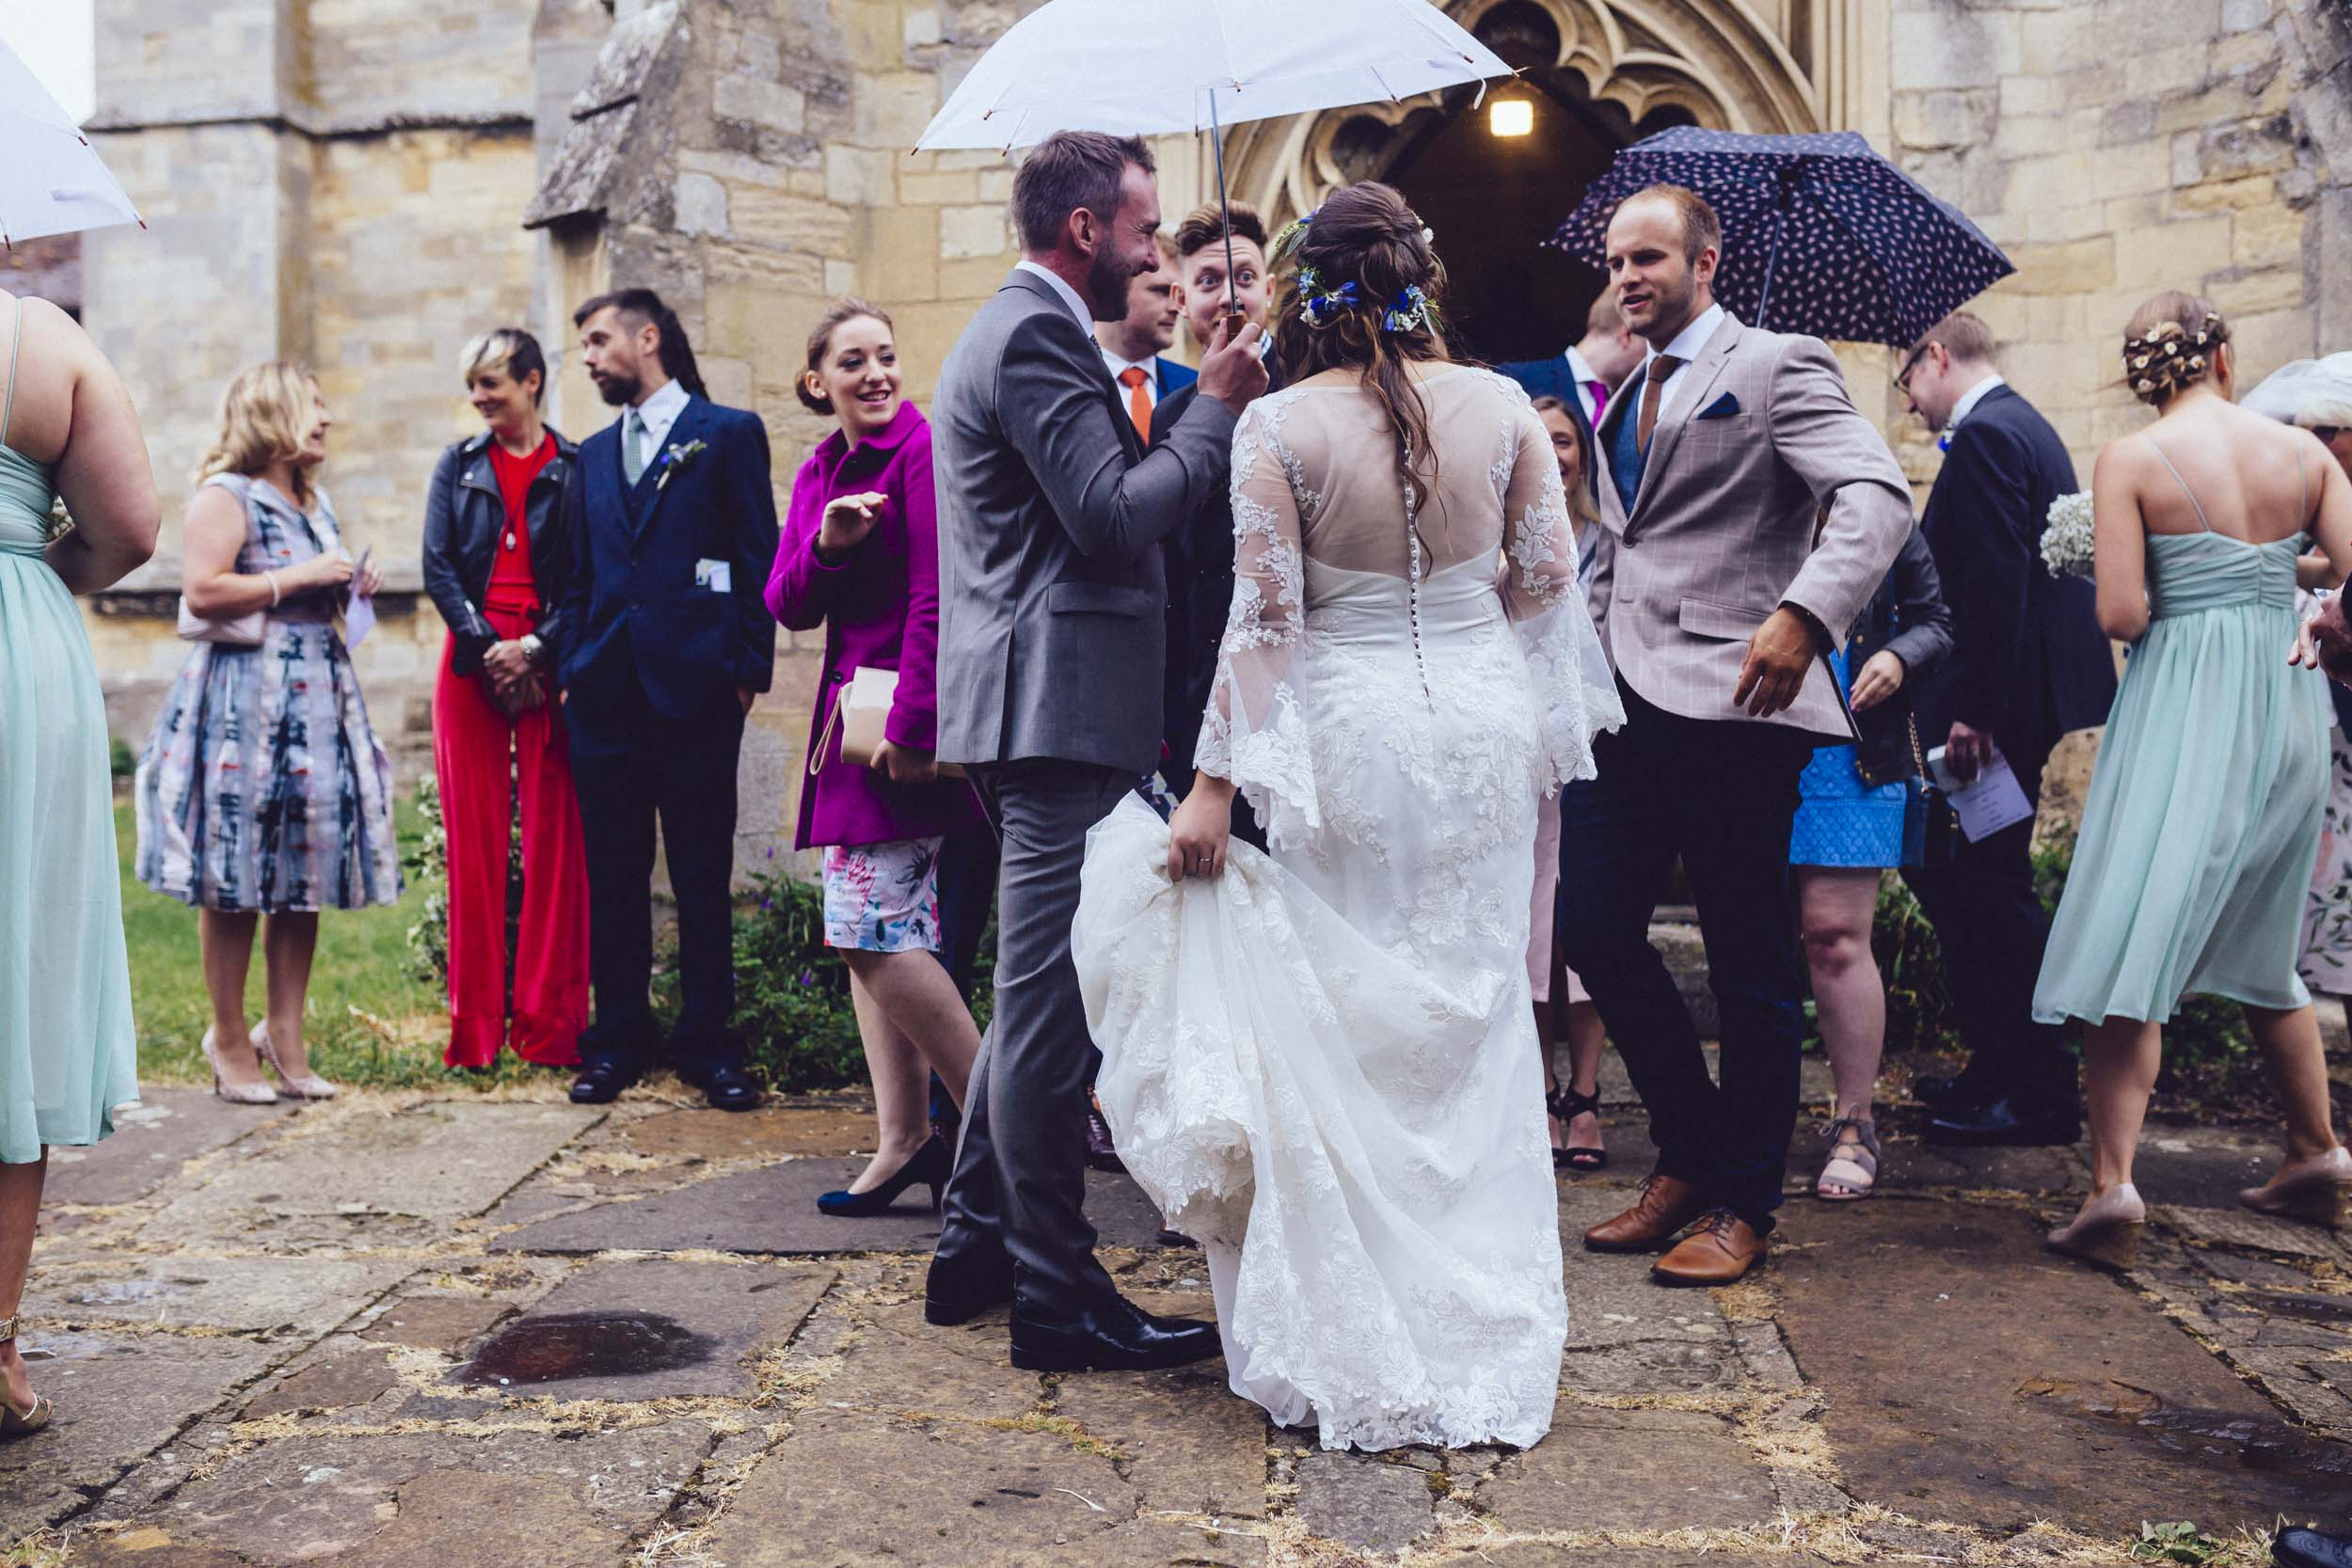 13Curious Rose Wedding Photography- Laura Rhodes- Newton Park Farm- Birmingham Artistic wedding photography-rainy wedding.jpg